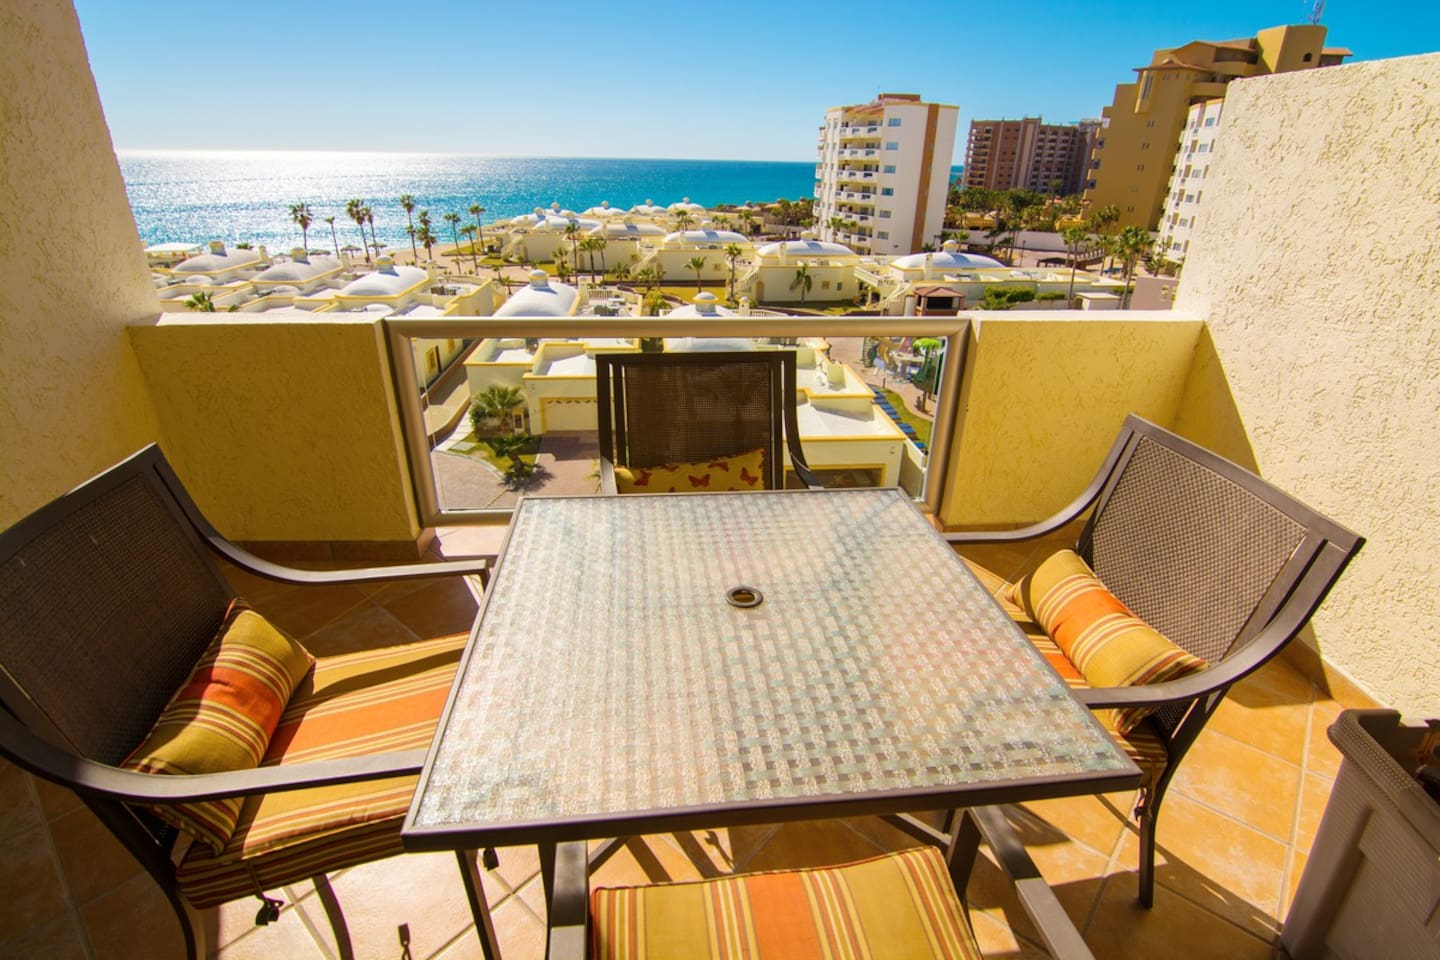 Balcony,Dining Table,Furniture,Table,Dining Room